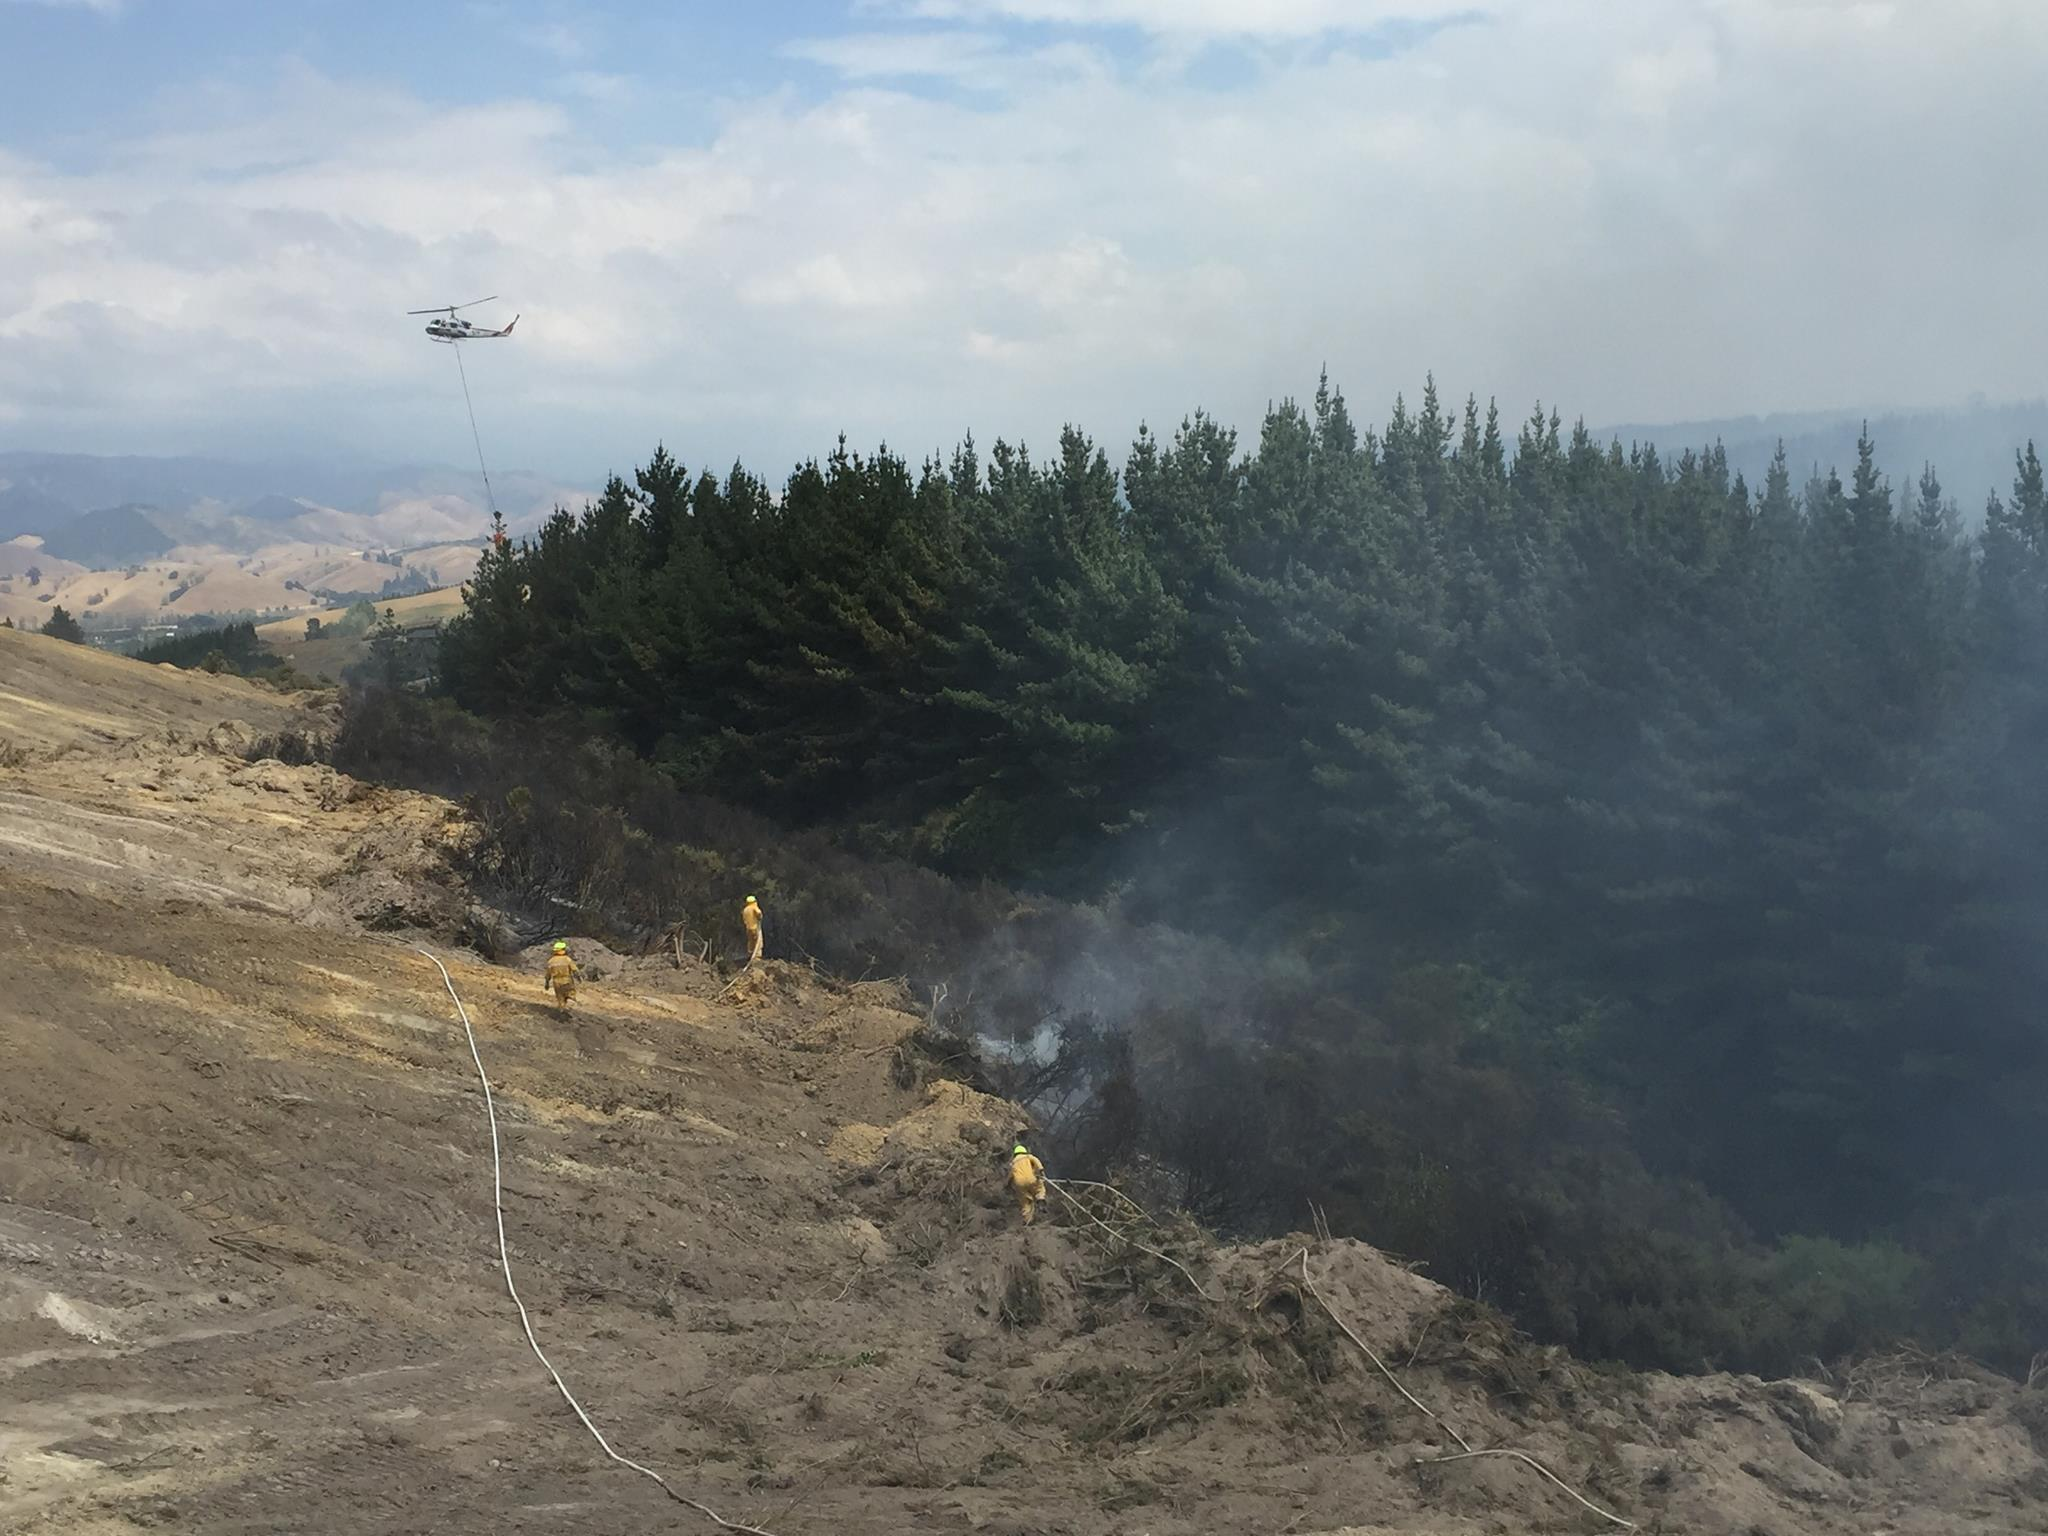 Nelson and Tasman fires February 2019. Image courtesy of Nelson Civil Defence.